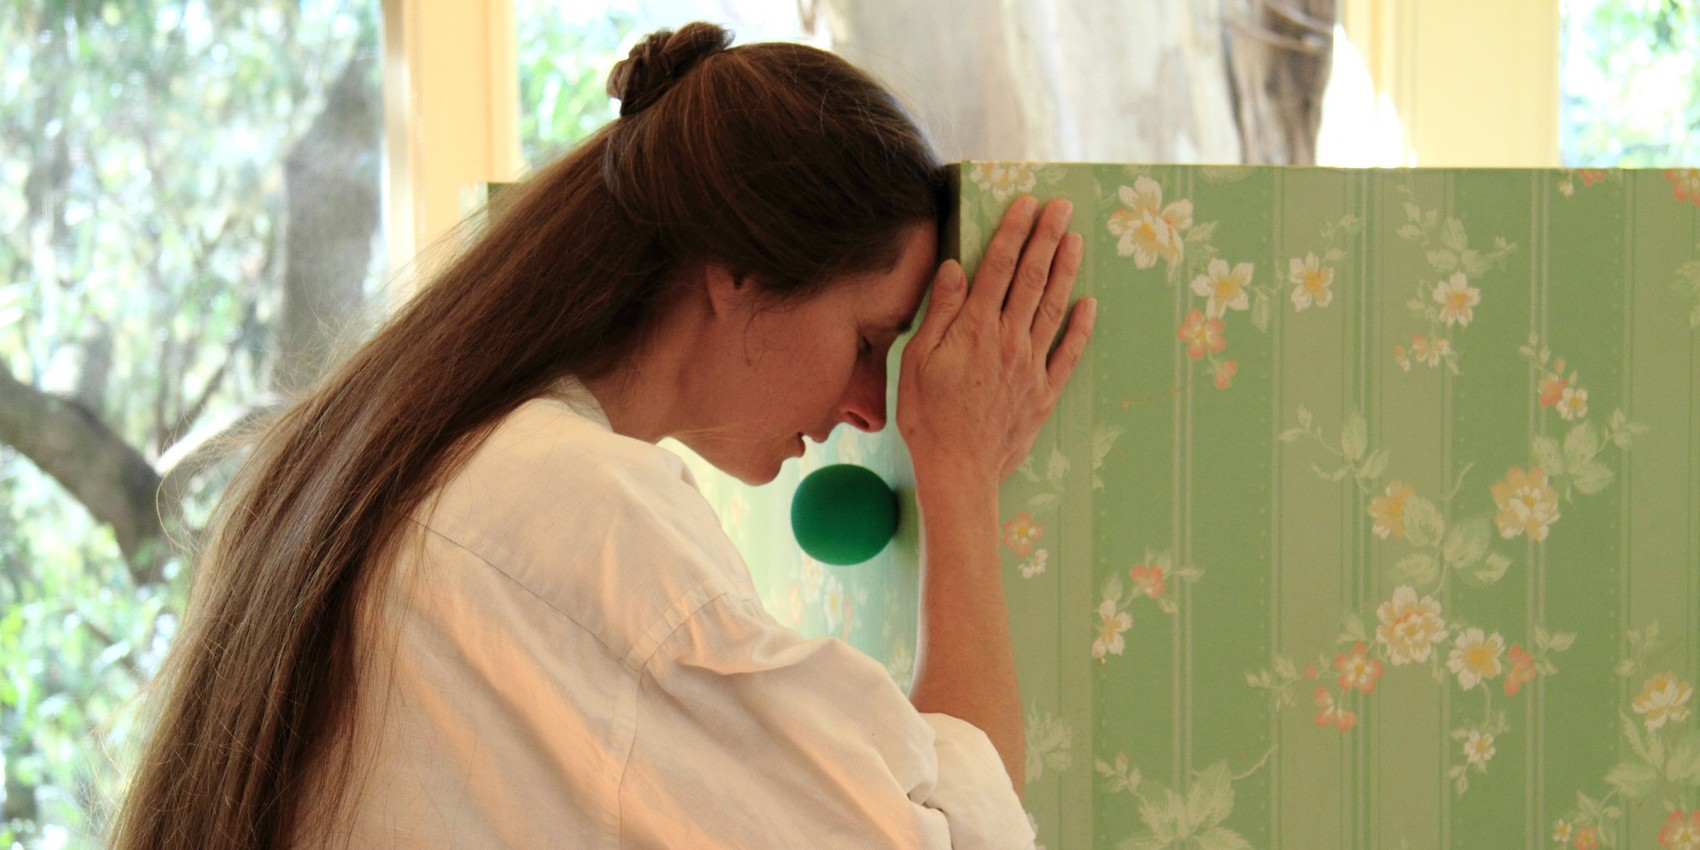 Woman with her head pressed against a pale green floral patterned box